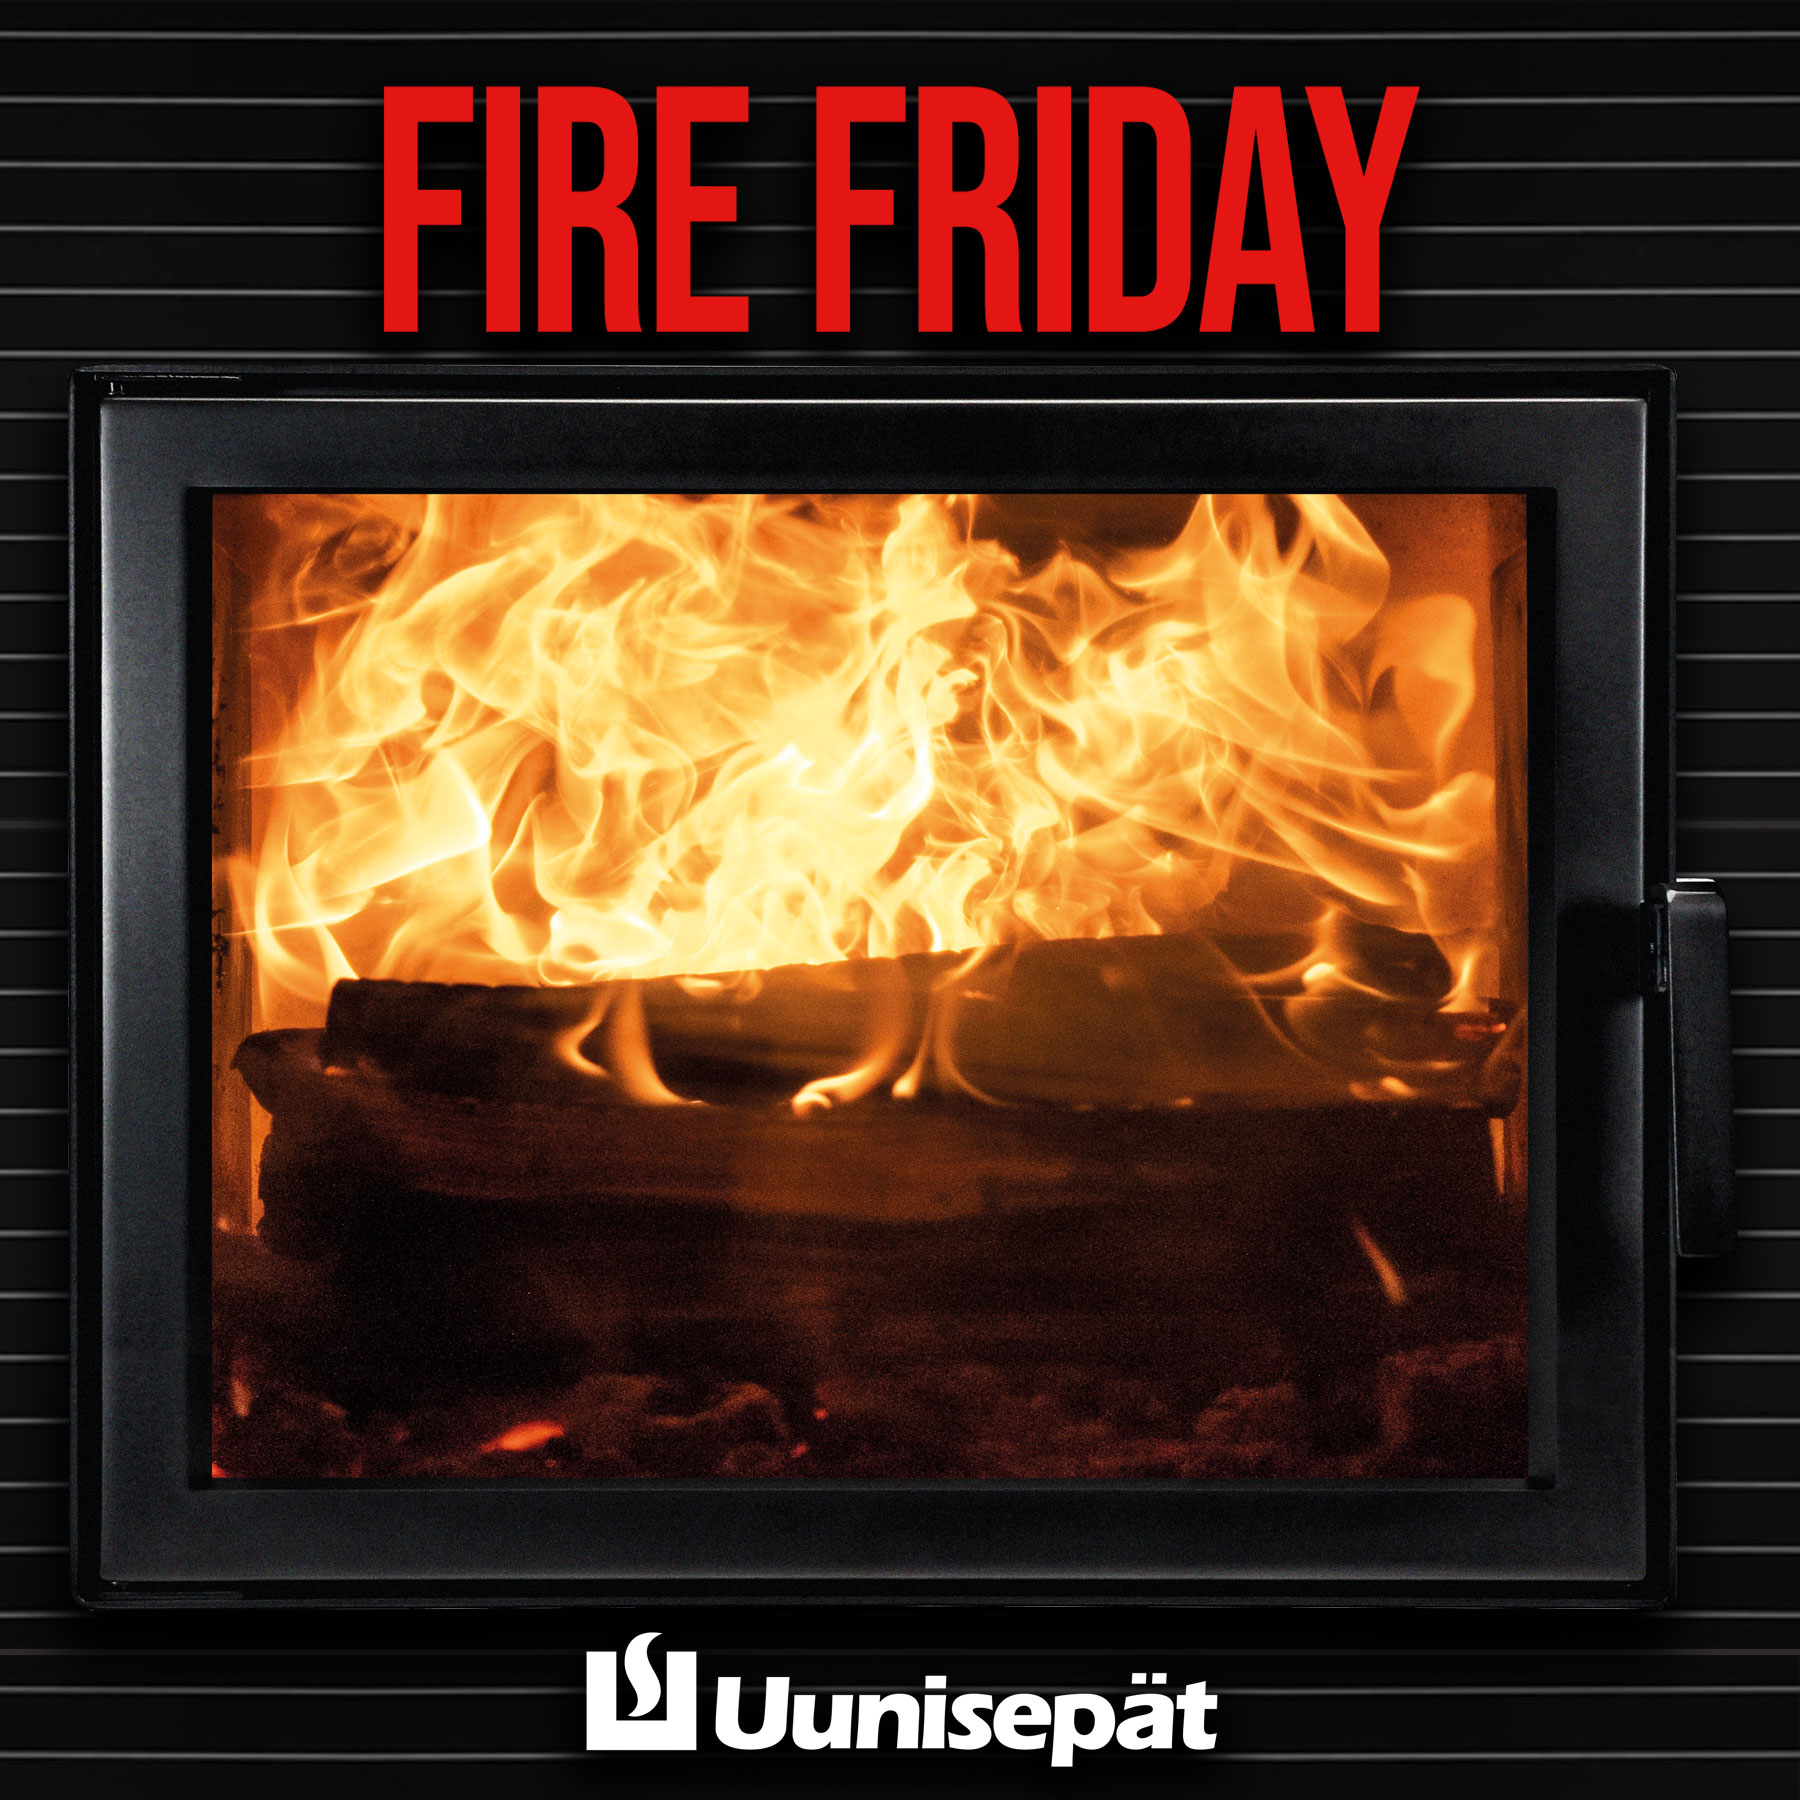 Fire Friday